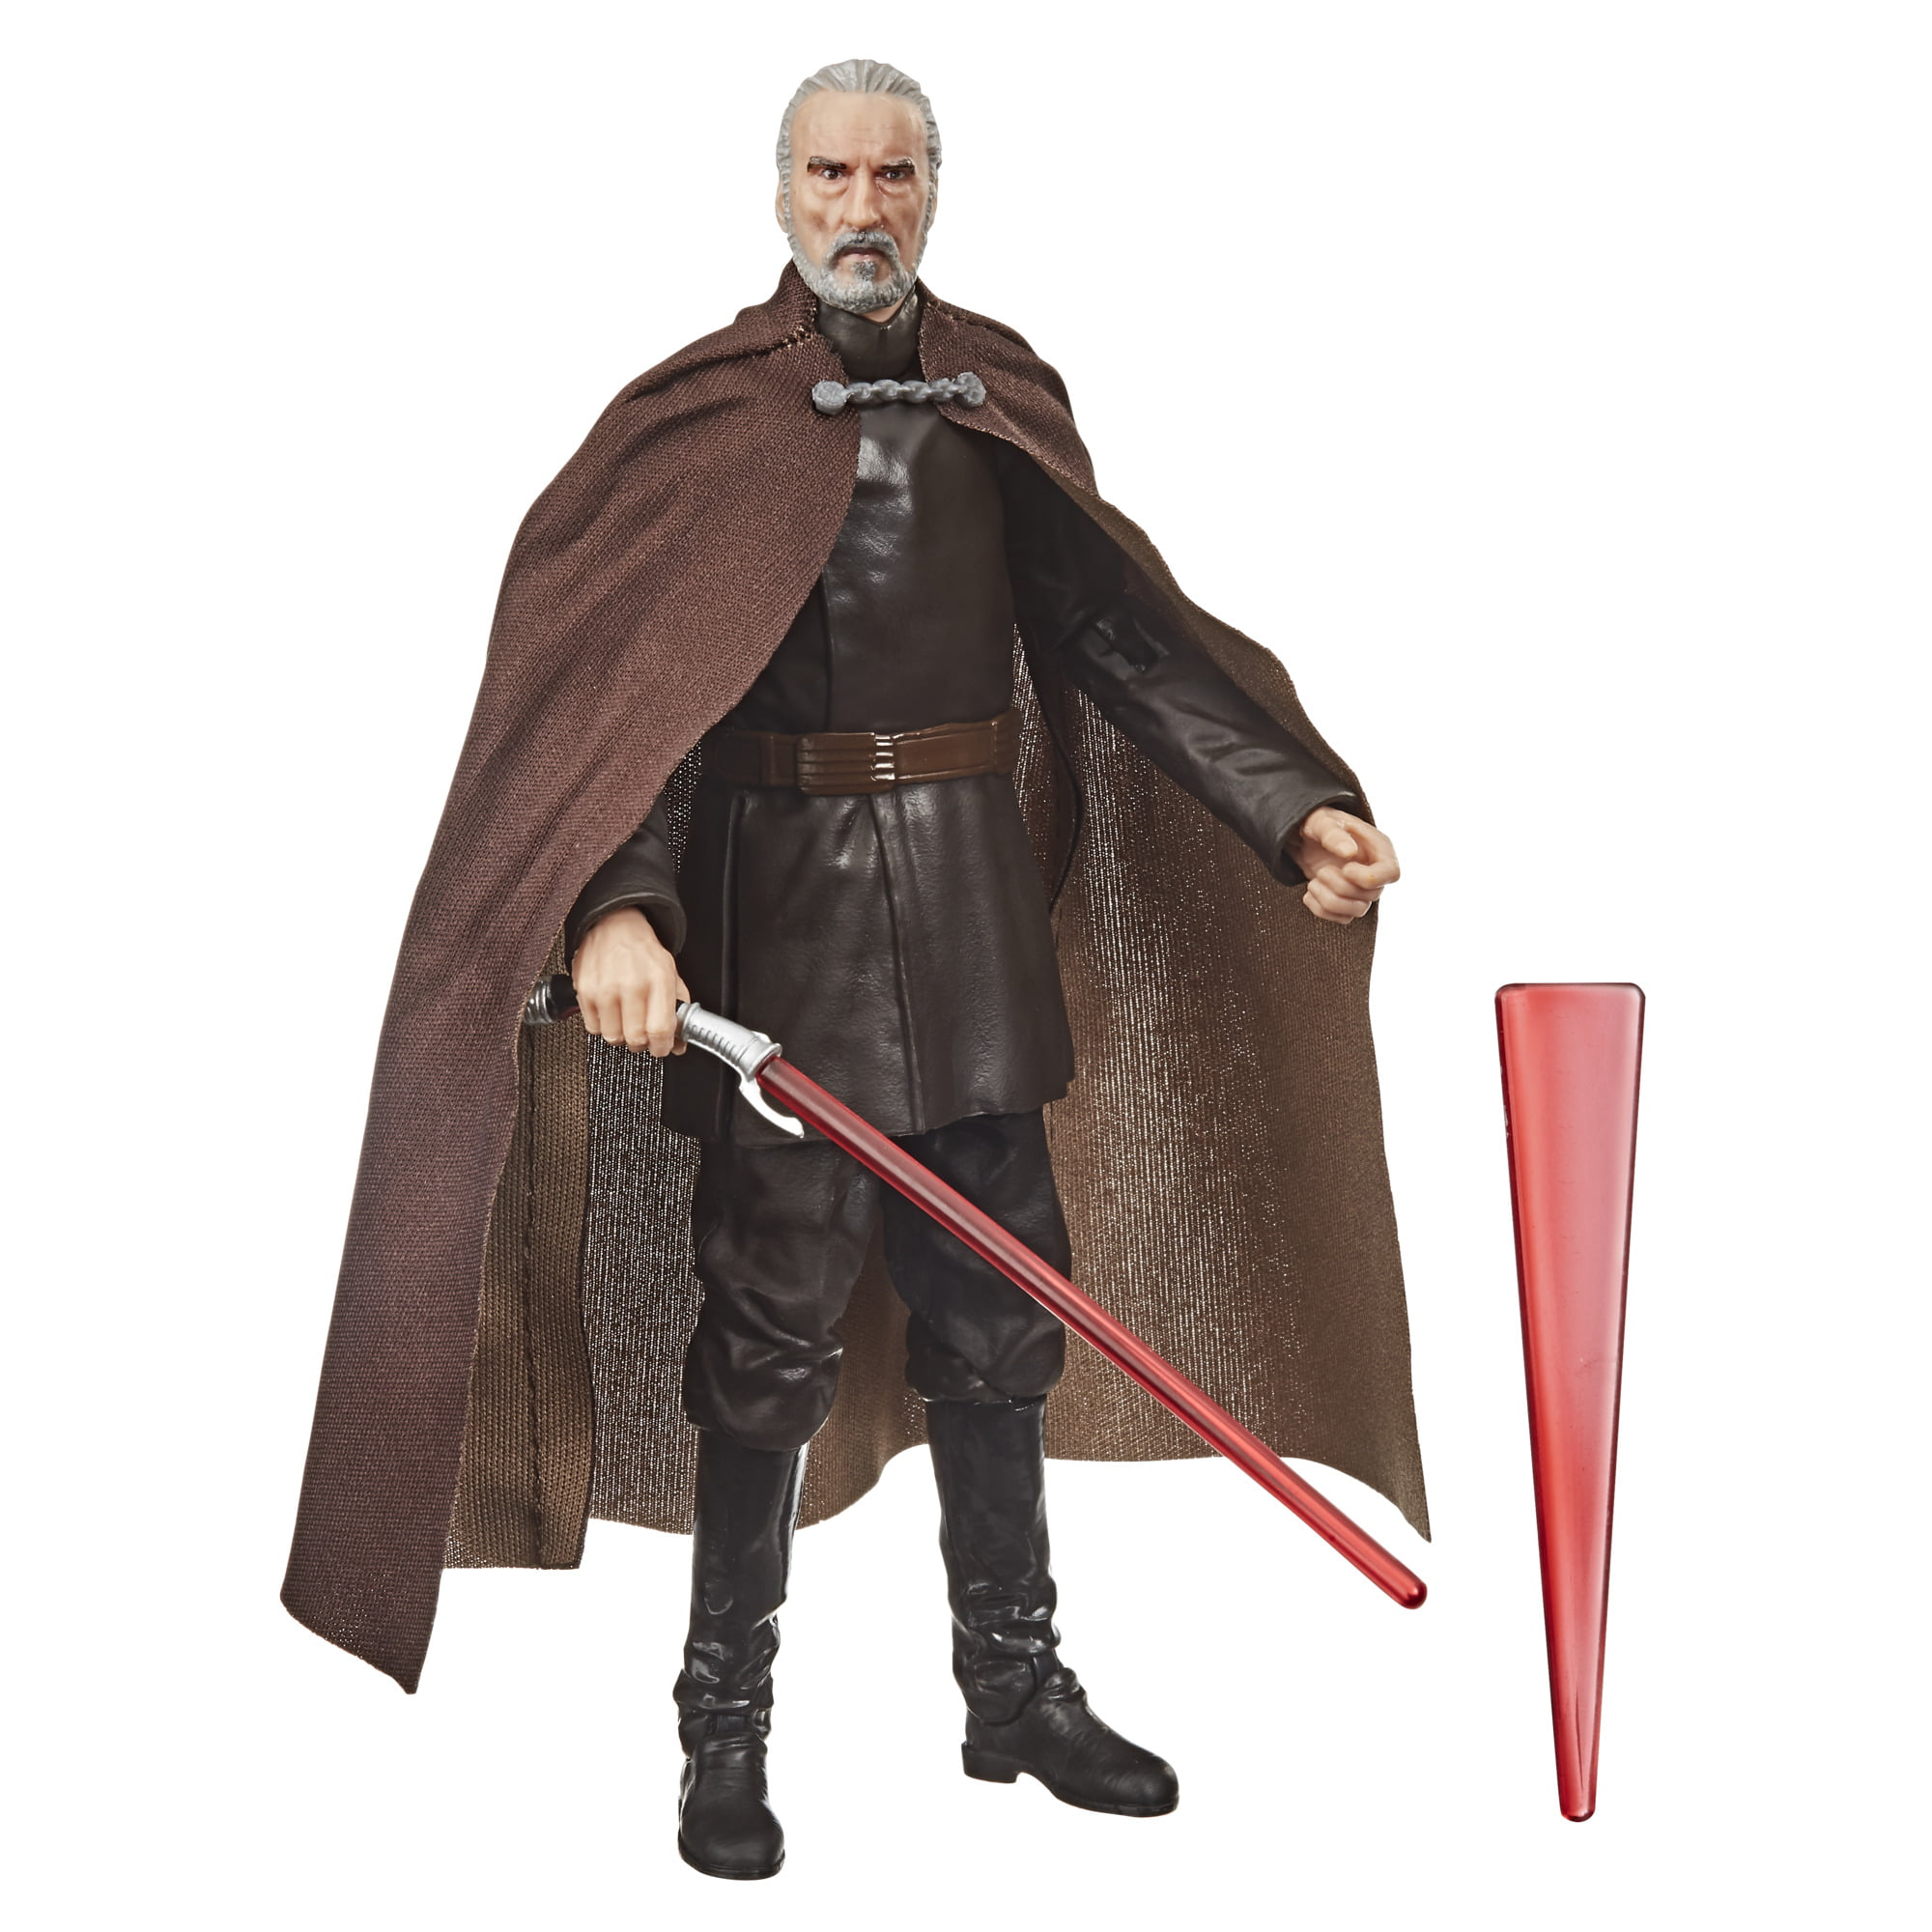 Star Wars The Black Series Count Dooku Toy Action Figure